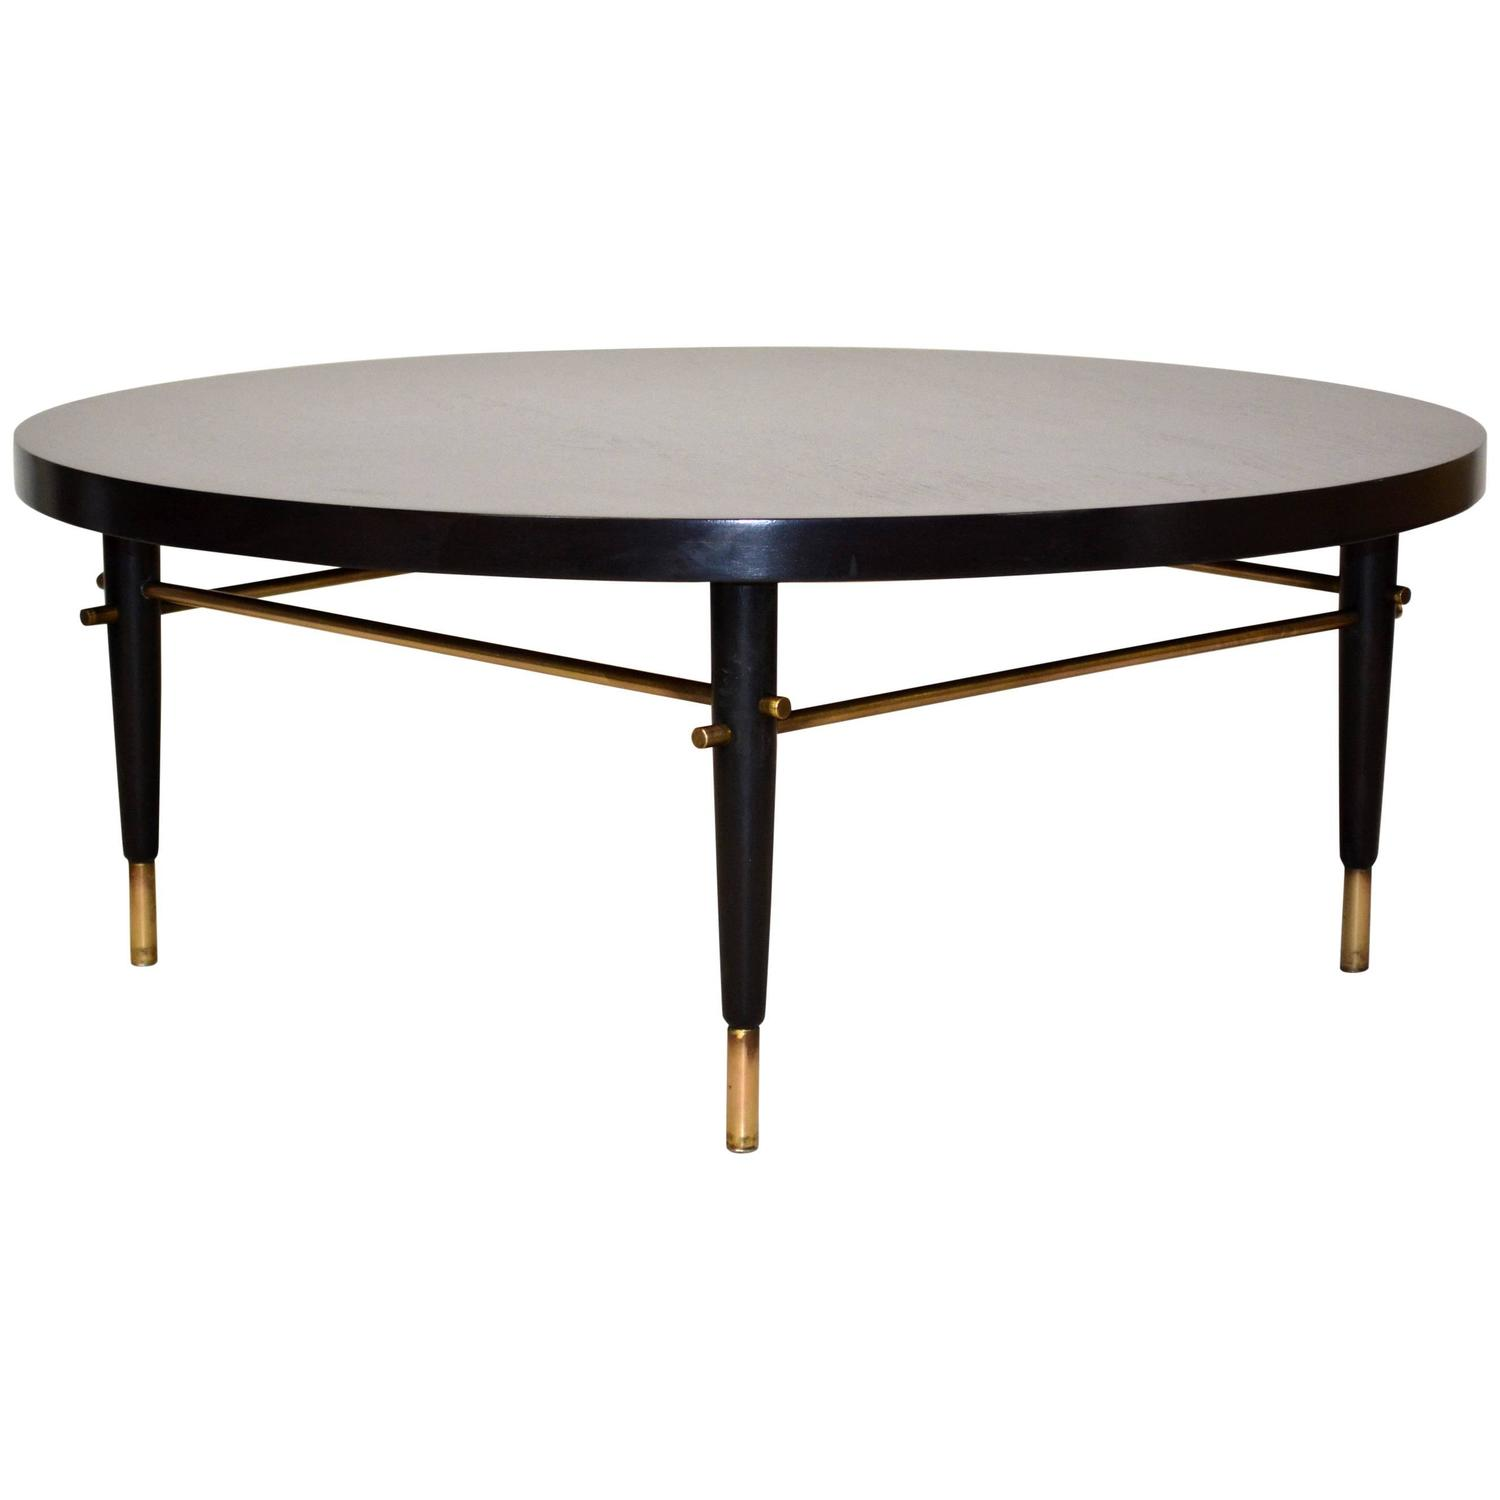 Mid Century Modern Coffee Table With Planter: Mid-Century Modern Ebonized Wood And Brass Cocktail Table